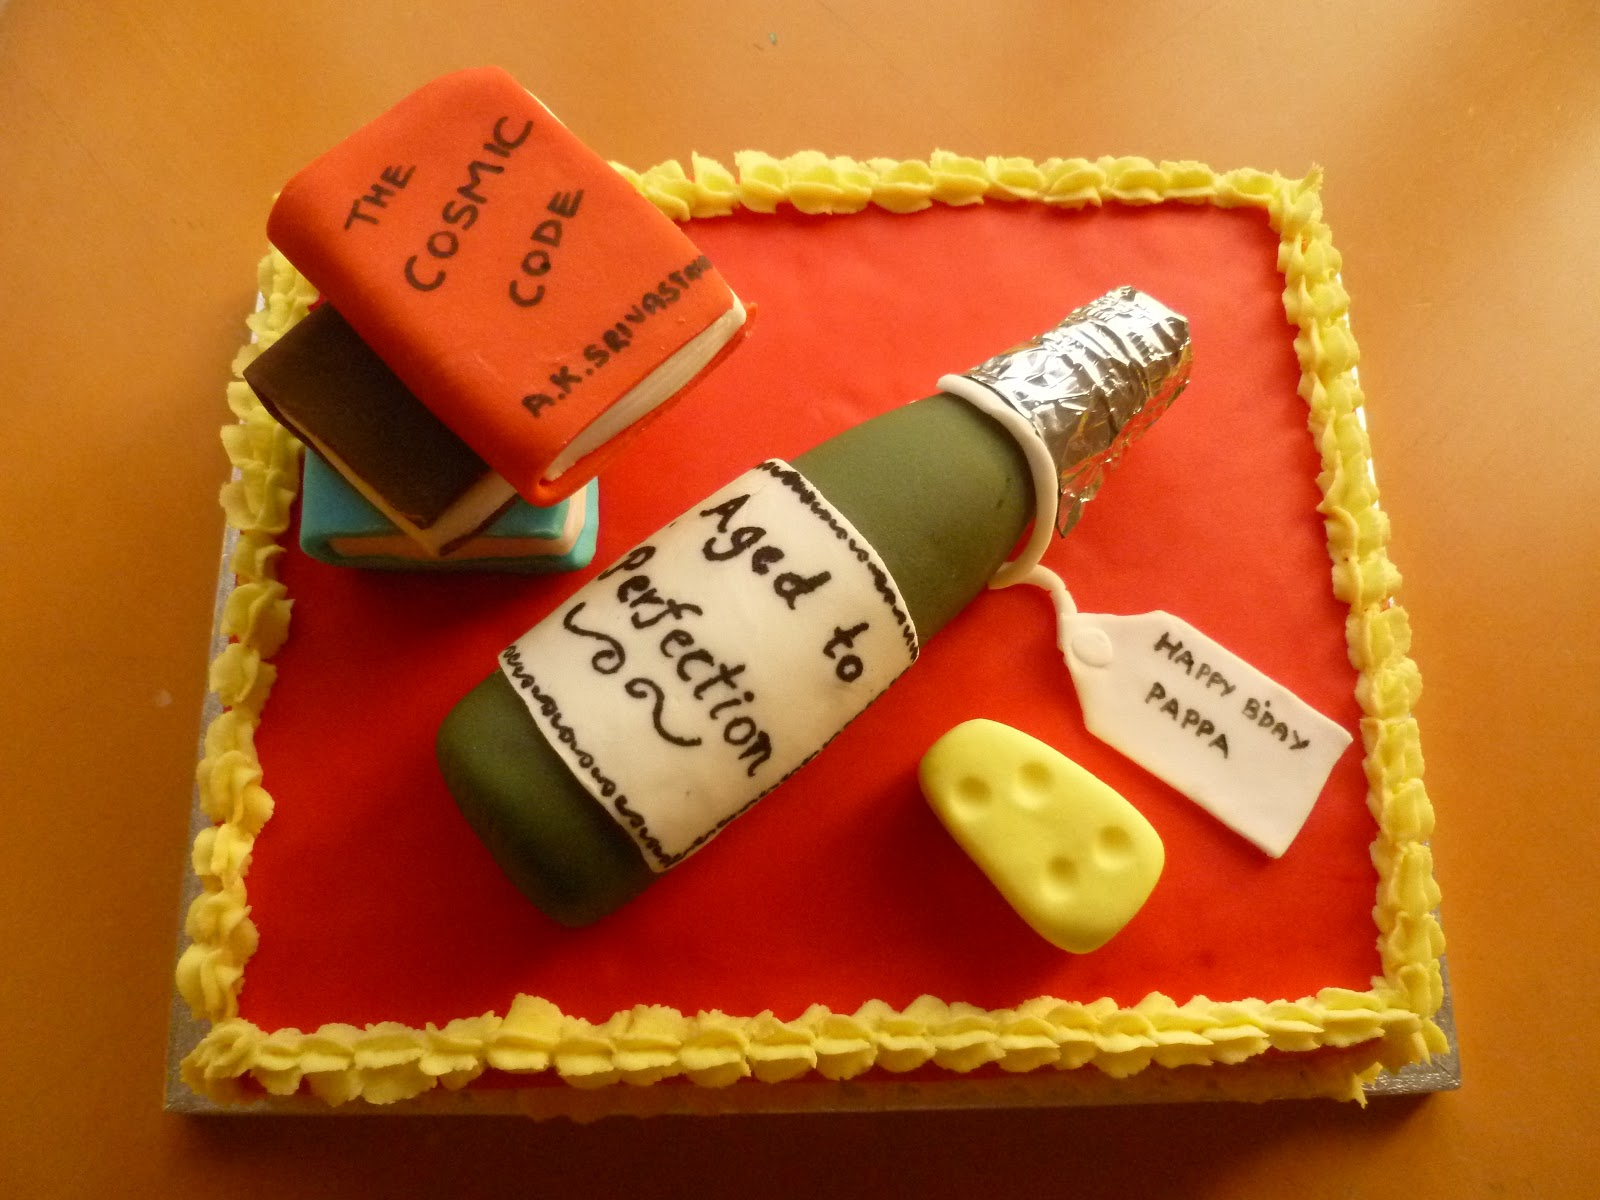 RUCHI Birthday Cake with Edible Handmade Wine Bottle Books and